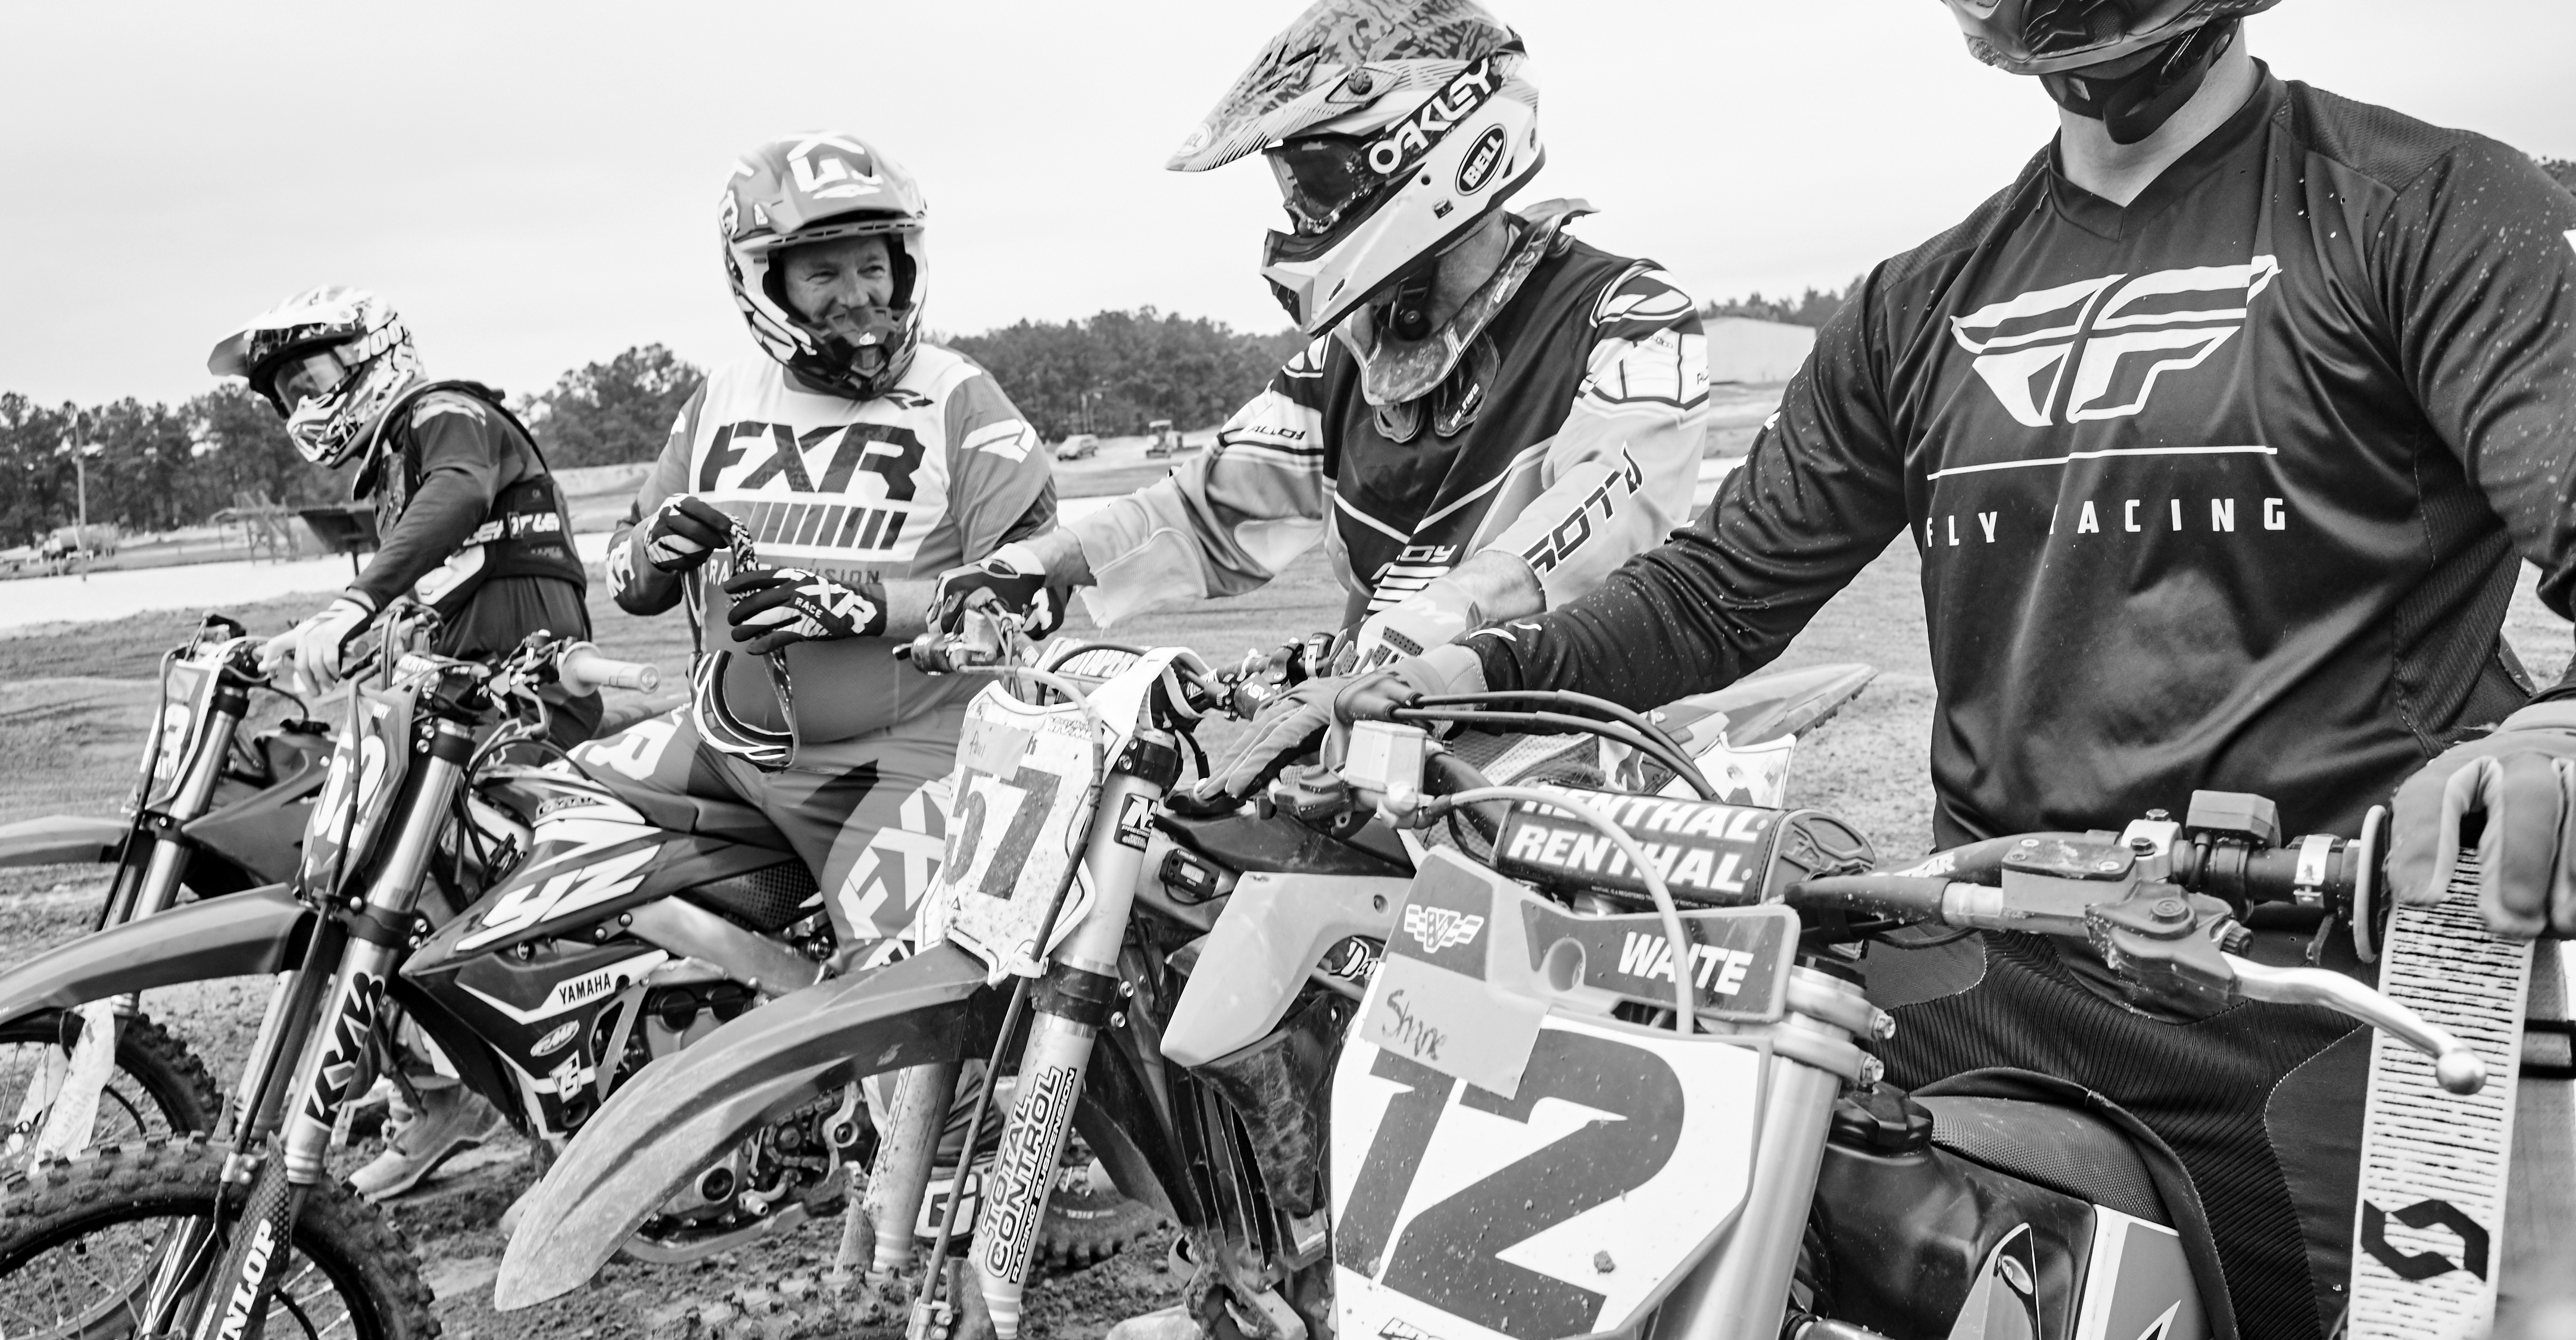 Veterans talk while lining up at the start gate at the supercross track